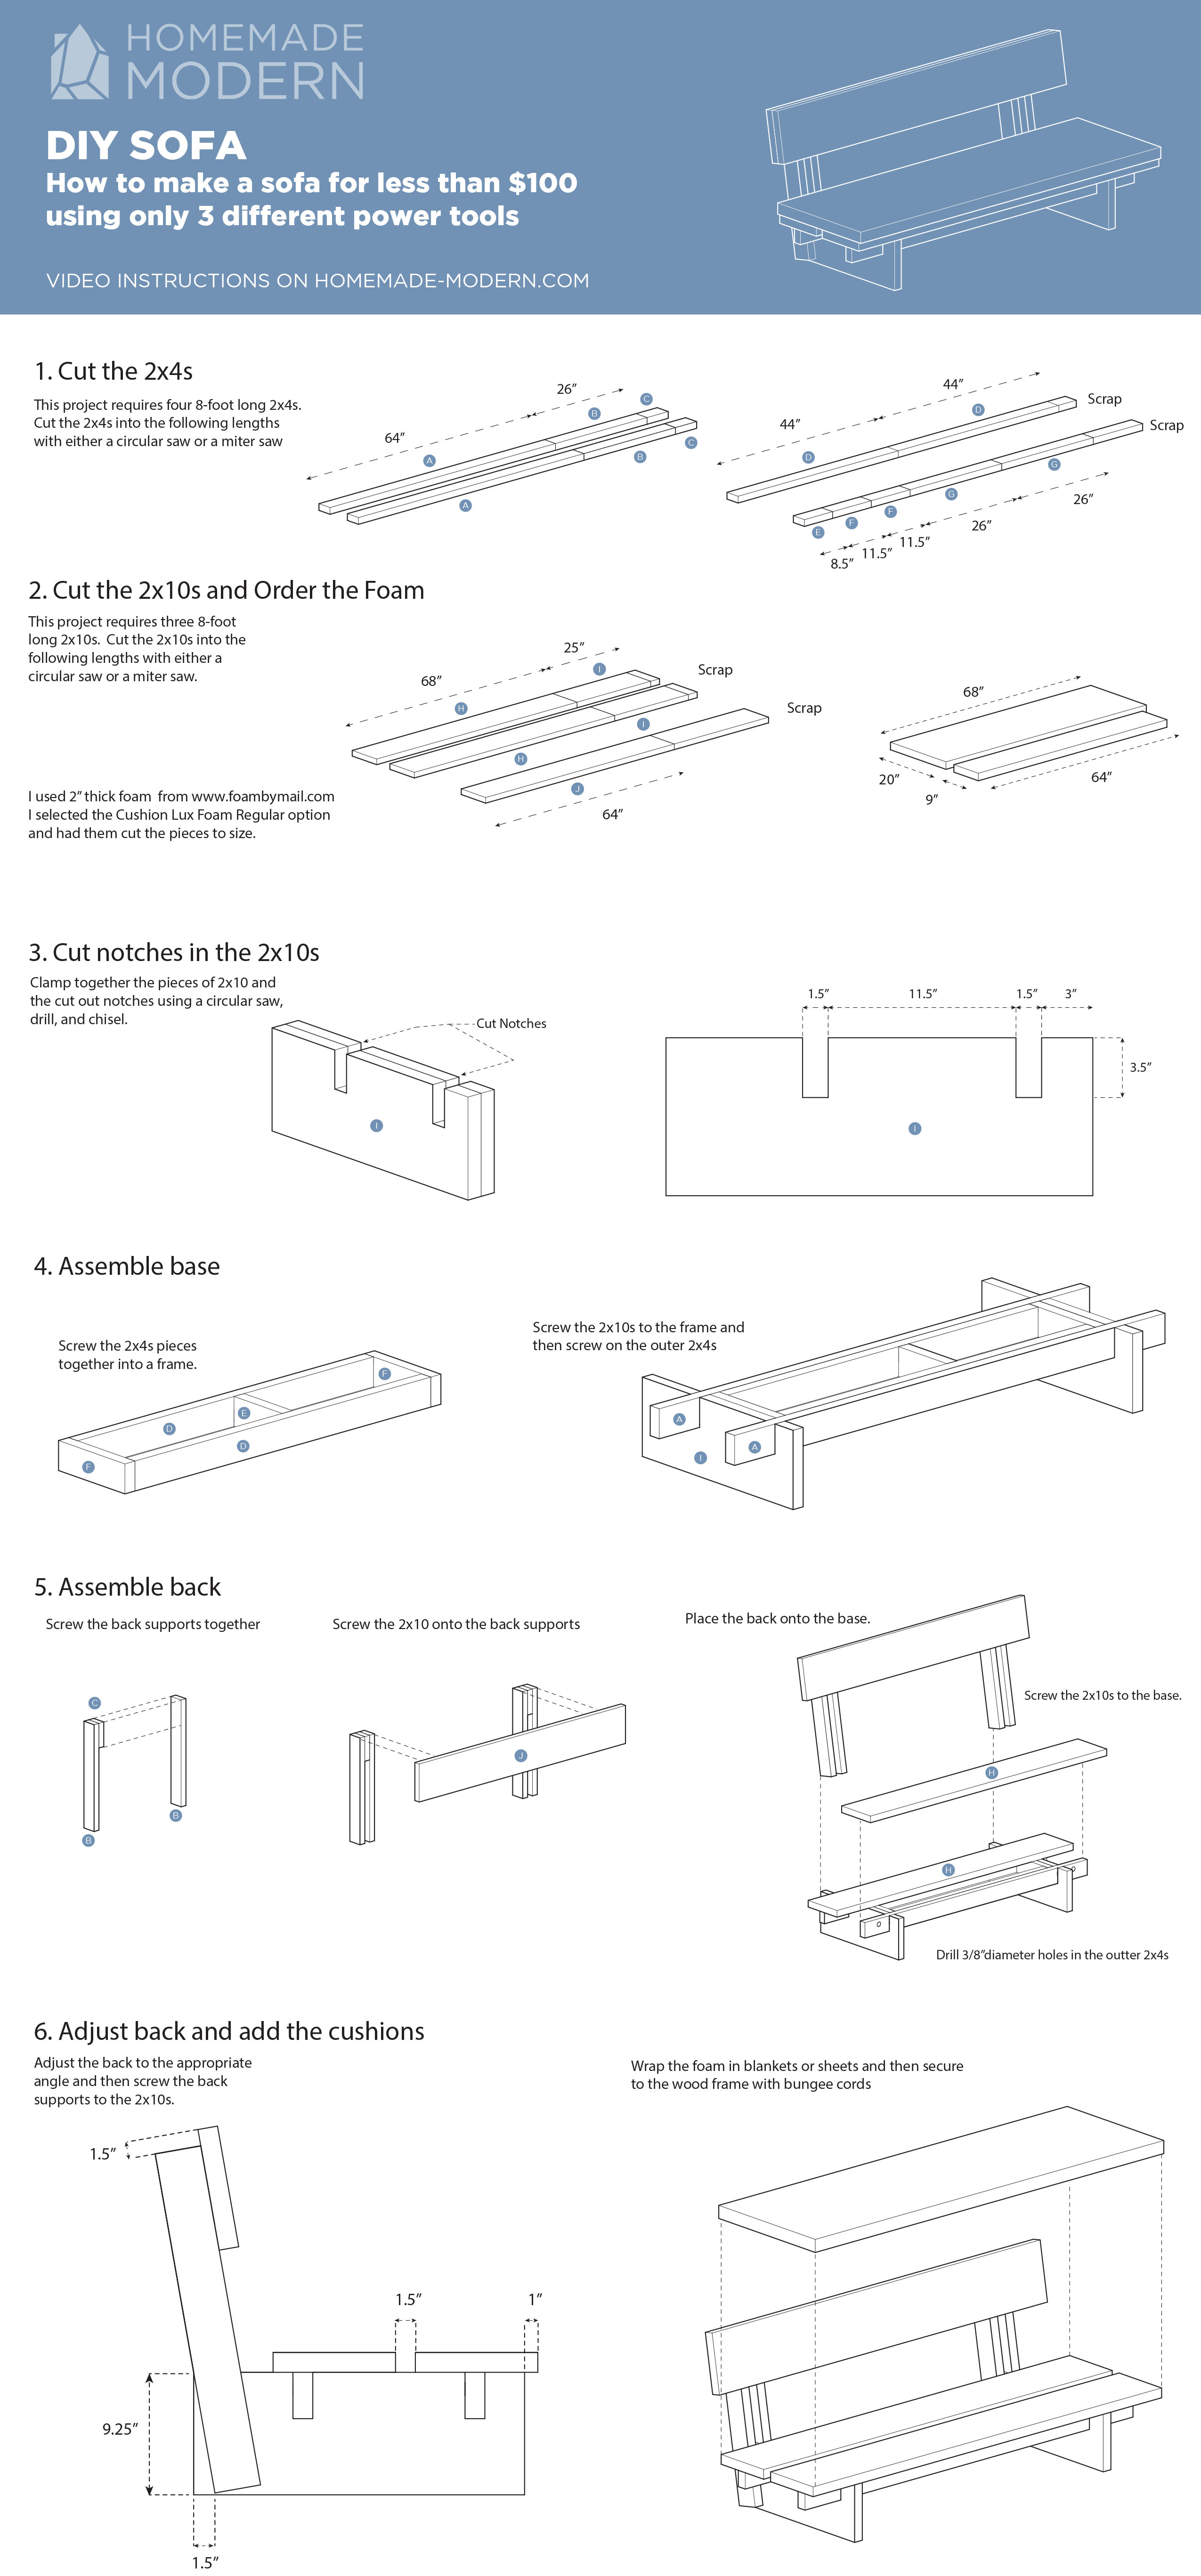 his DIY sofa can be made for less than $100 and requires no sewing. Full instructions can be found at RyobiTools.com.